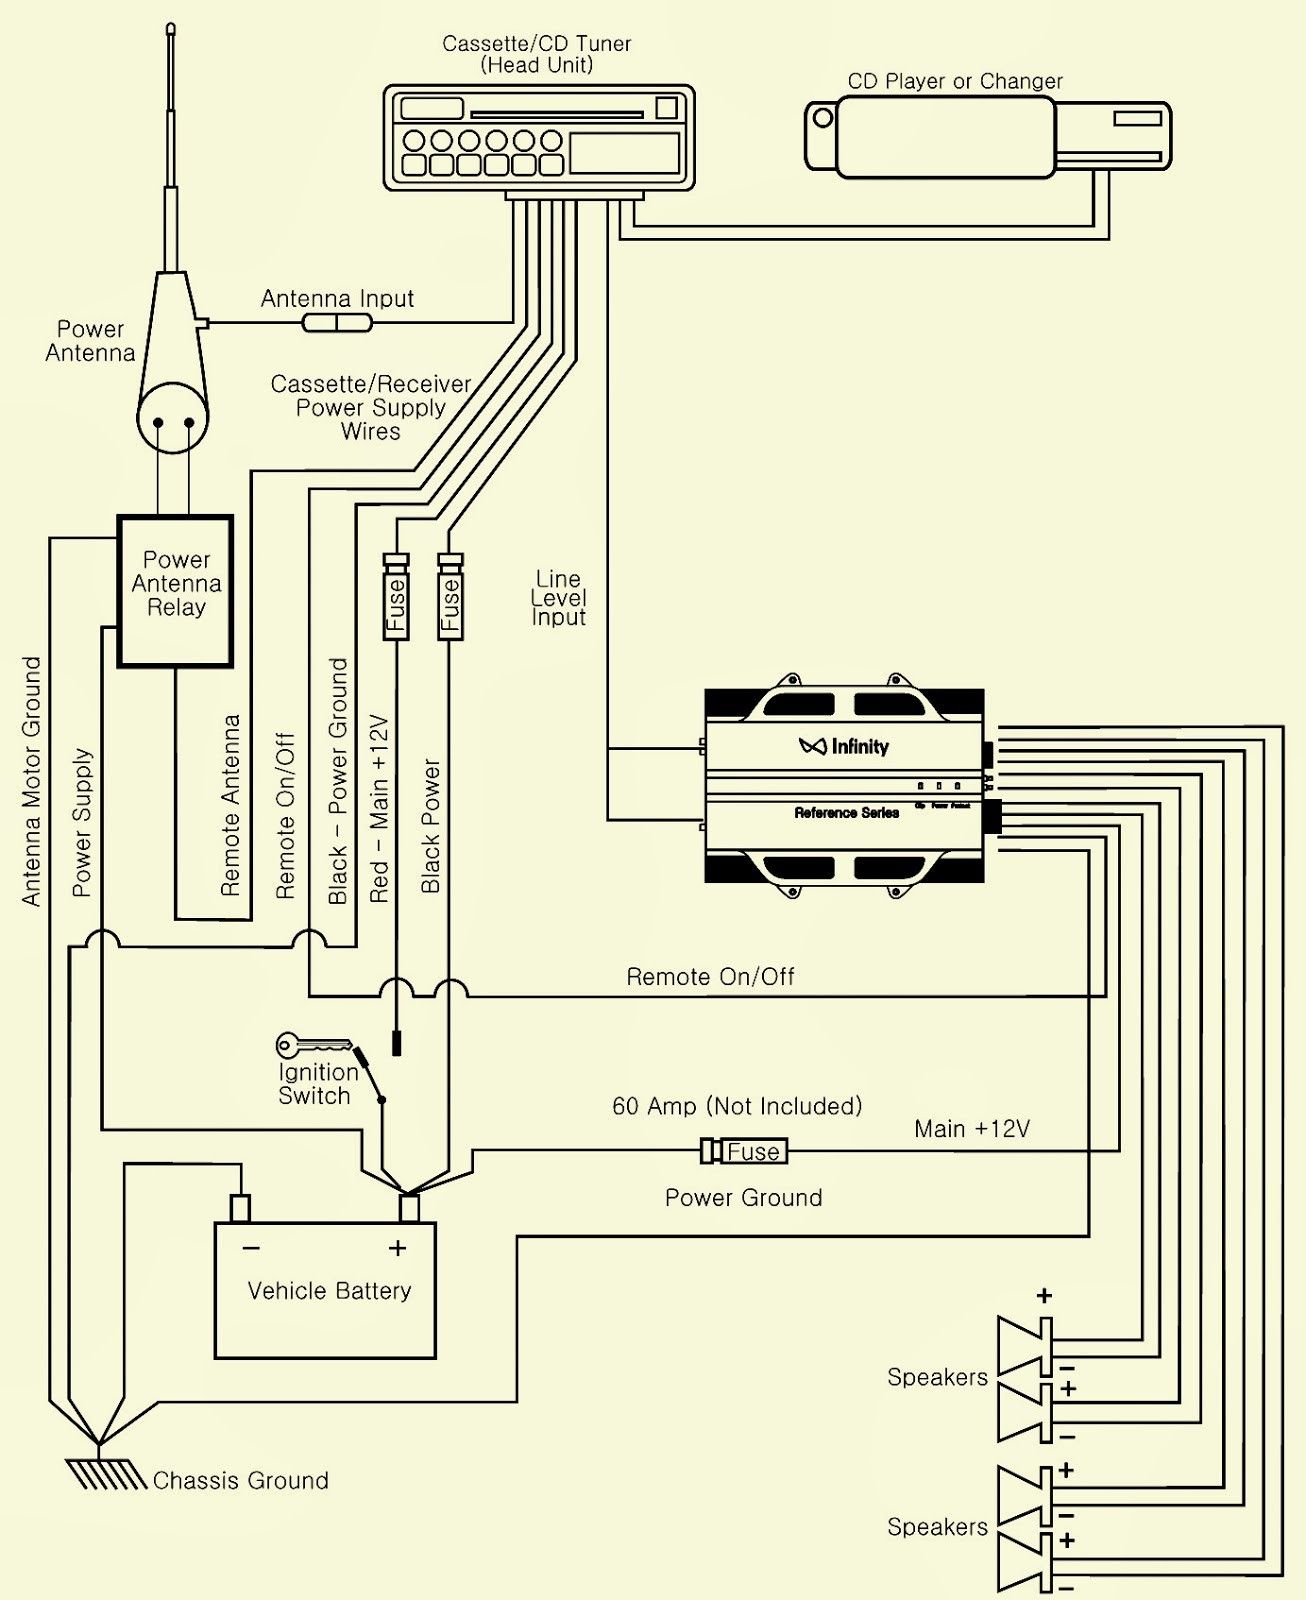 New Optimus Car Stereo Wiring Diagram diagram